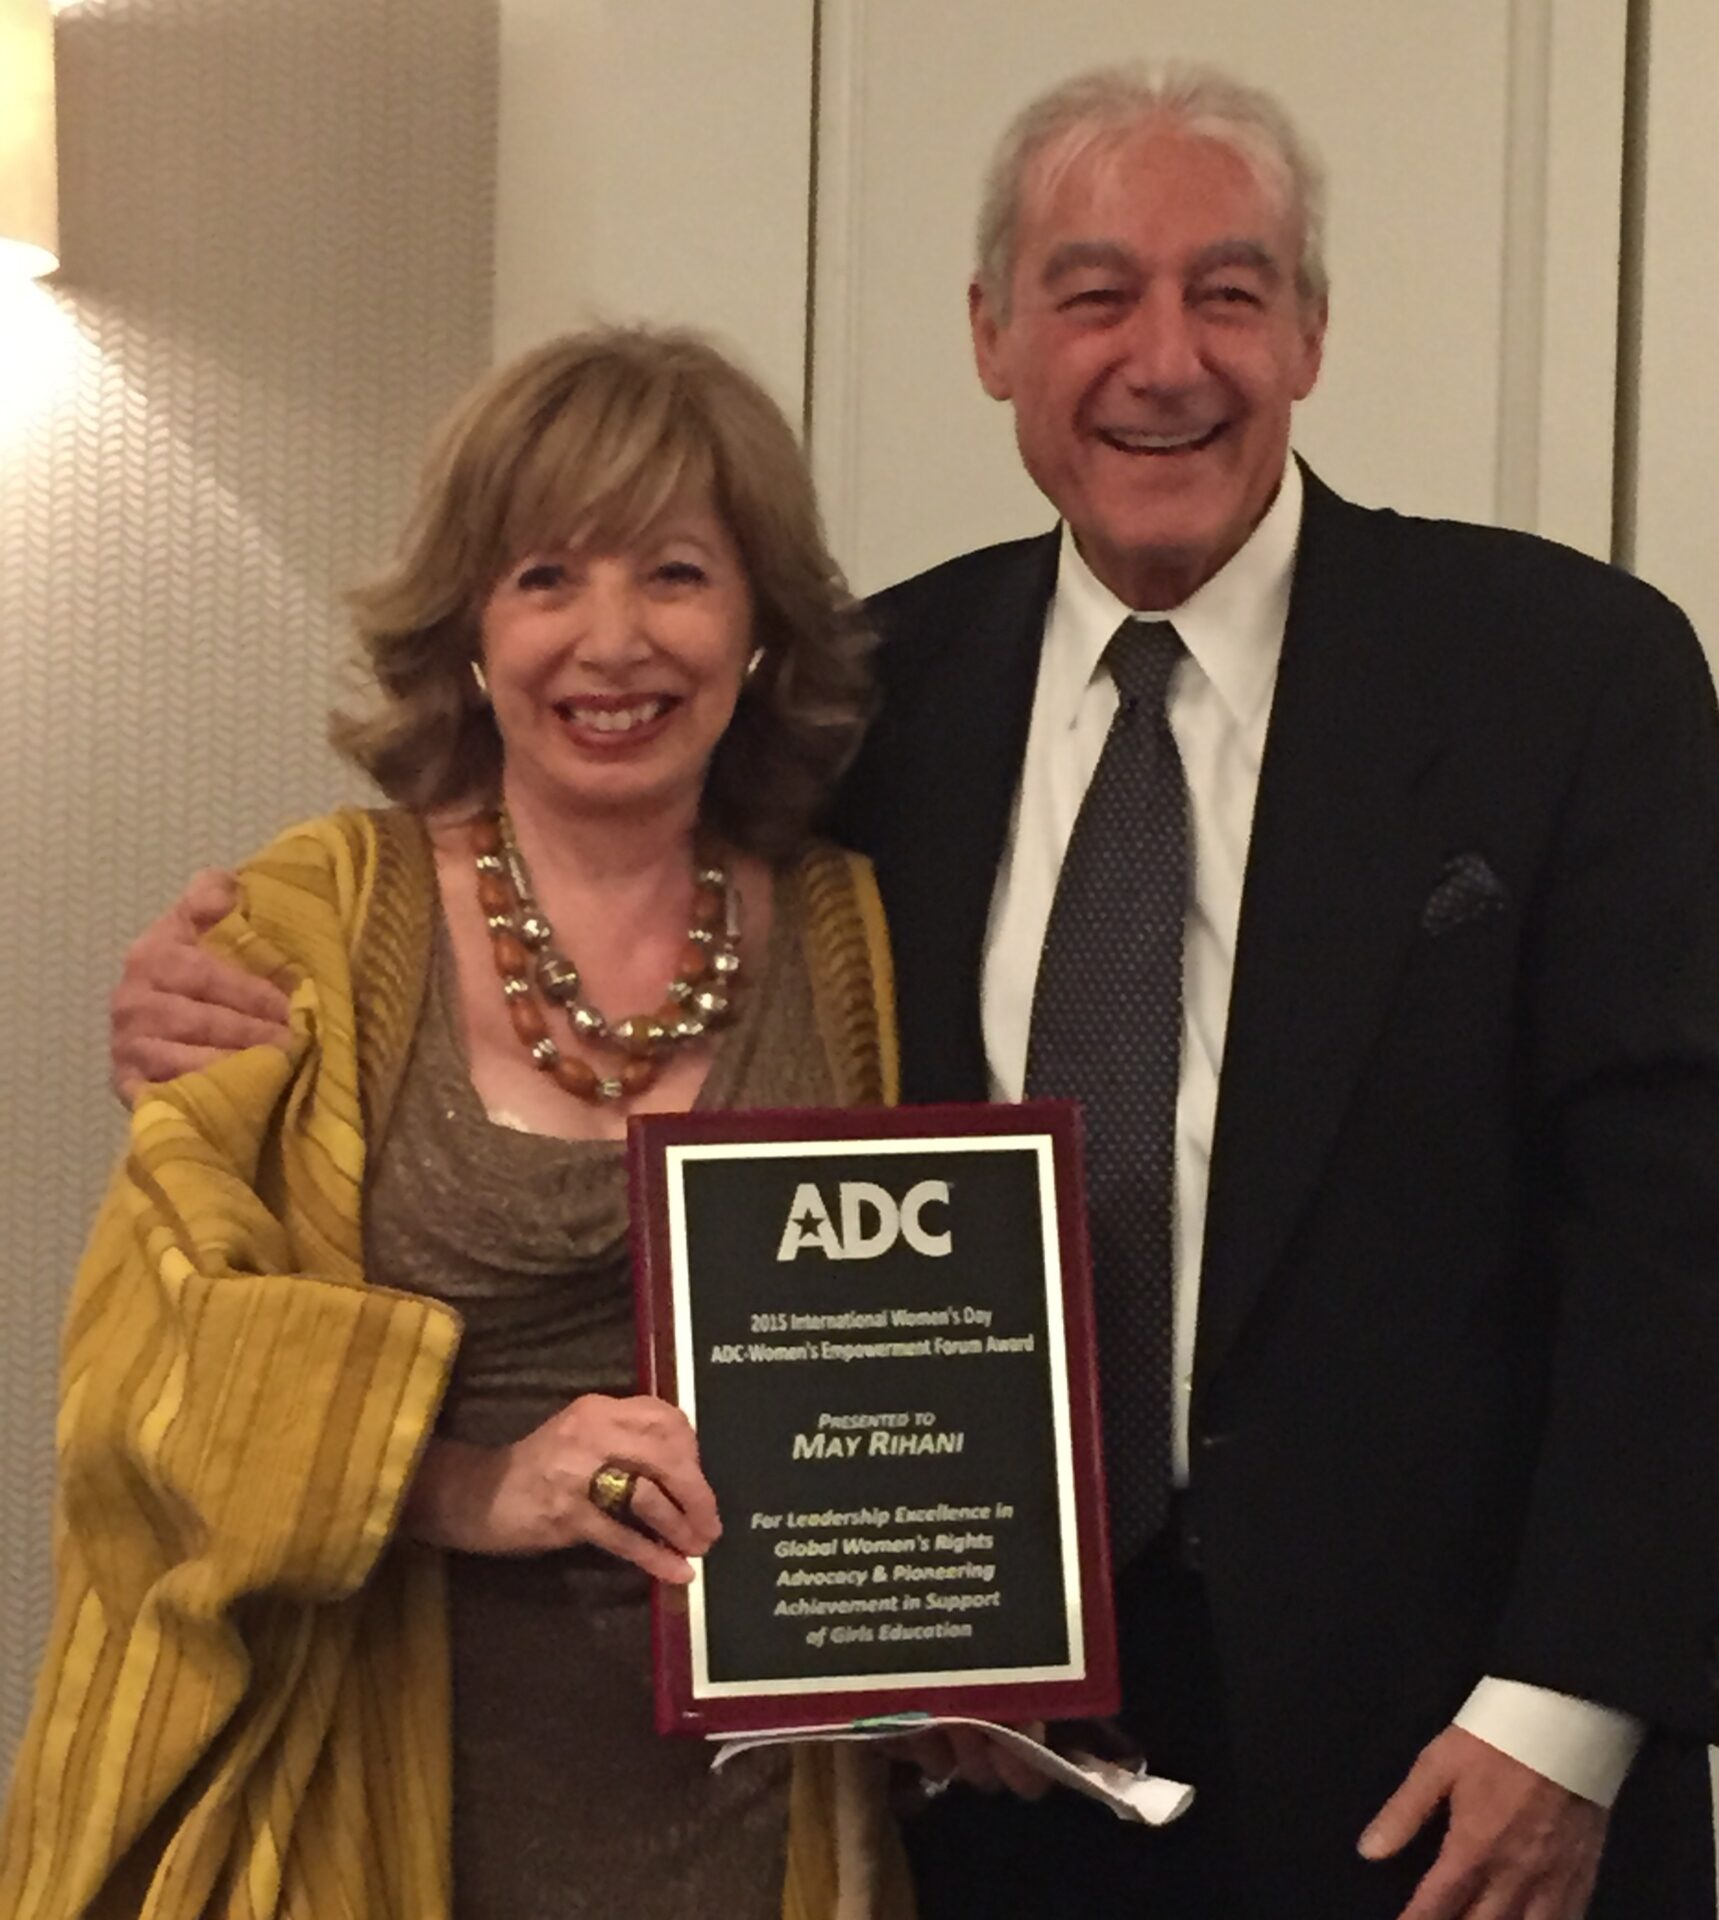 Receiving her award from Dr. Safa Rifka, ADC Board chair